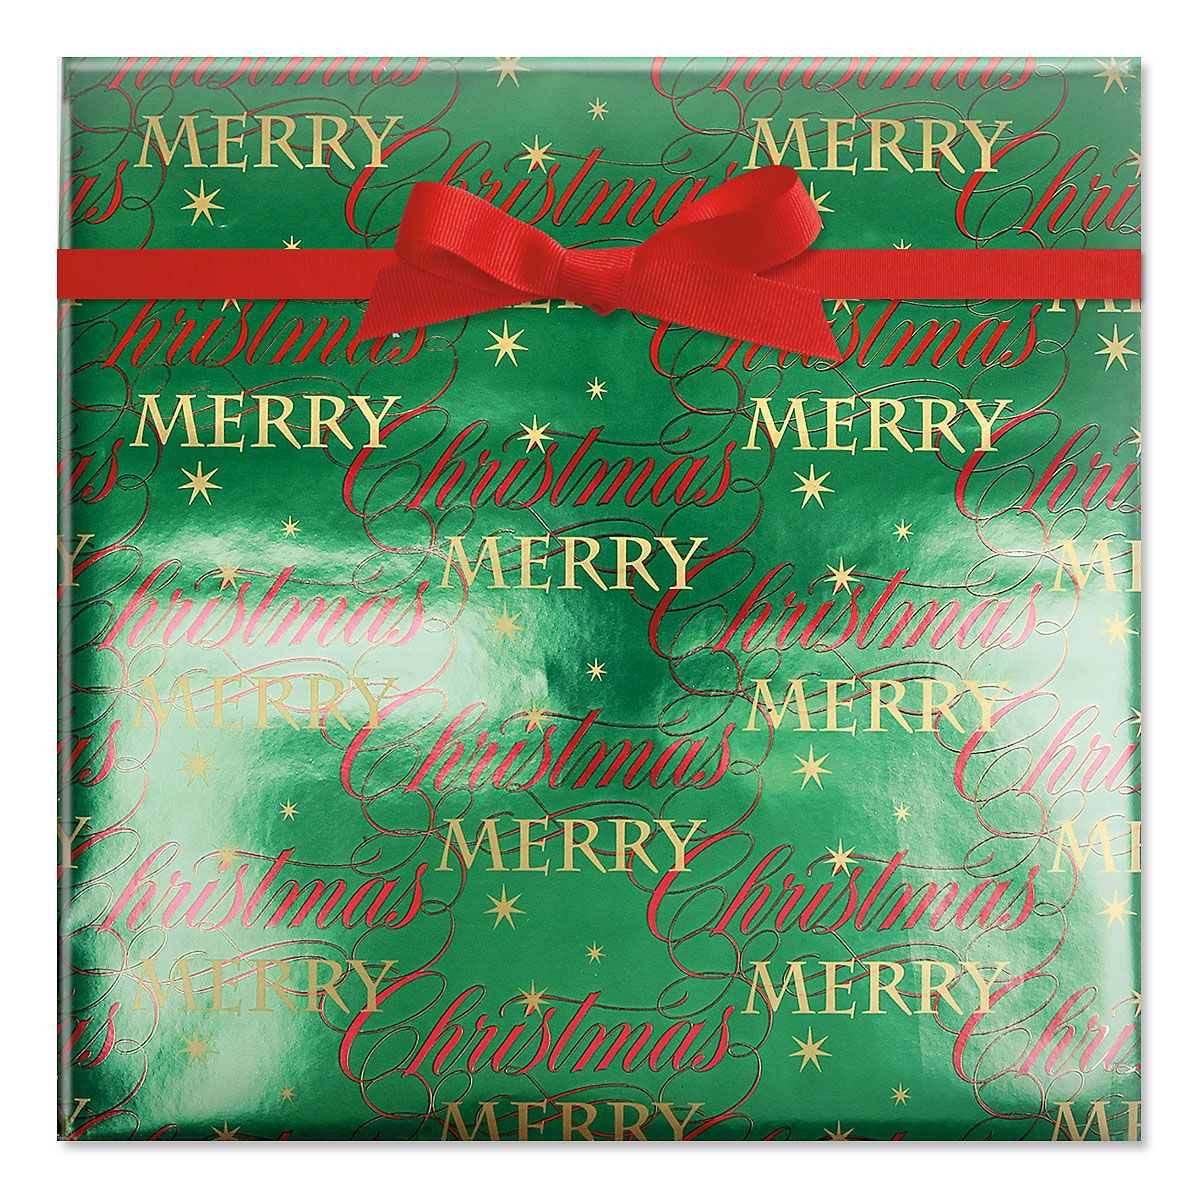 Merry Christmas Wishes Foil Rolled Gift Wrap